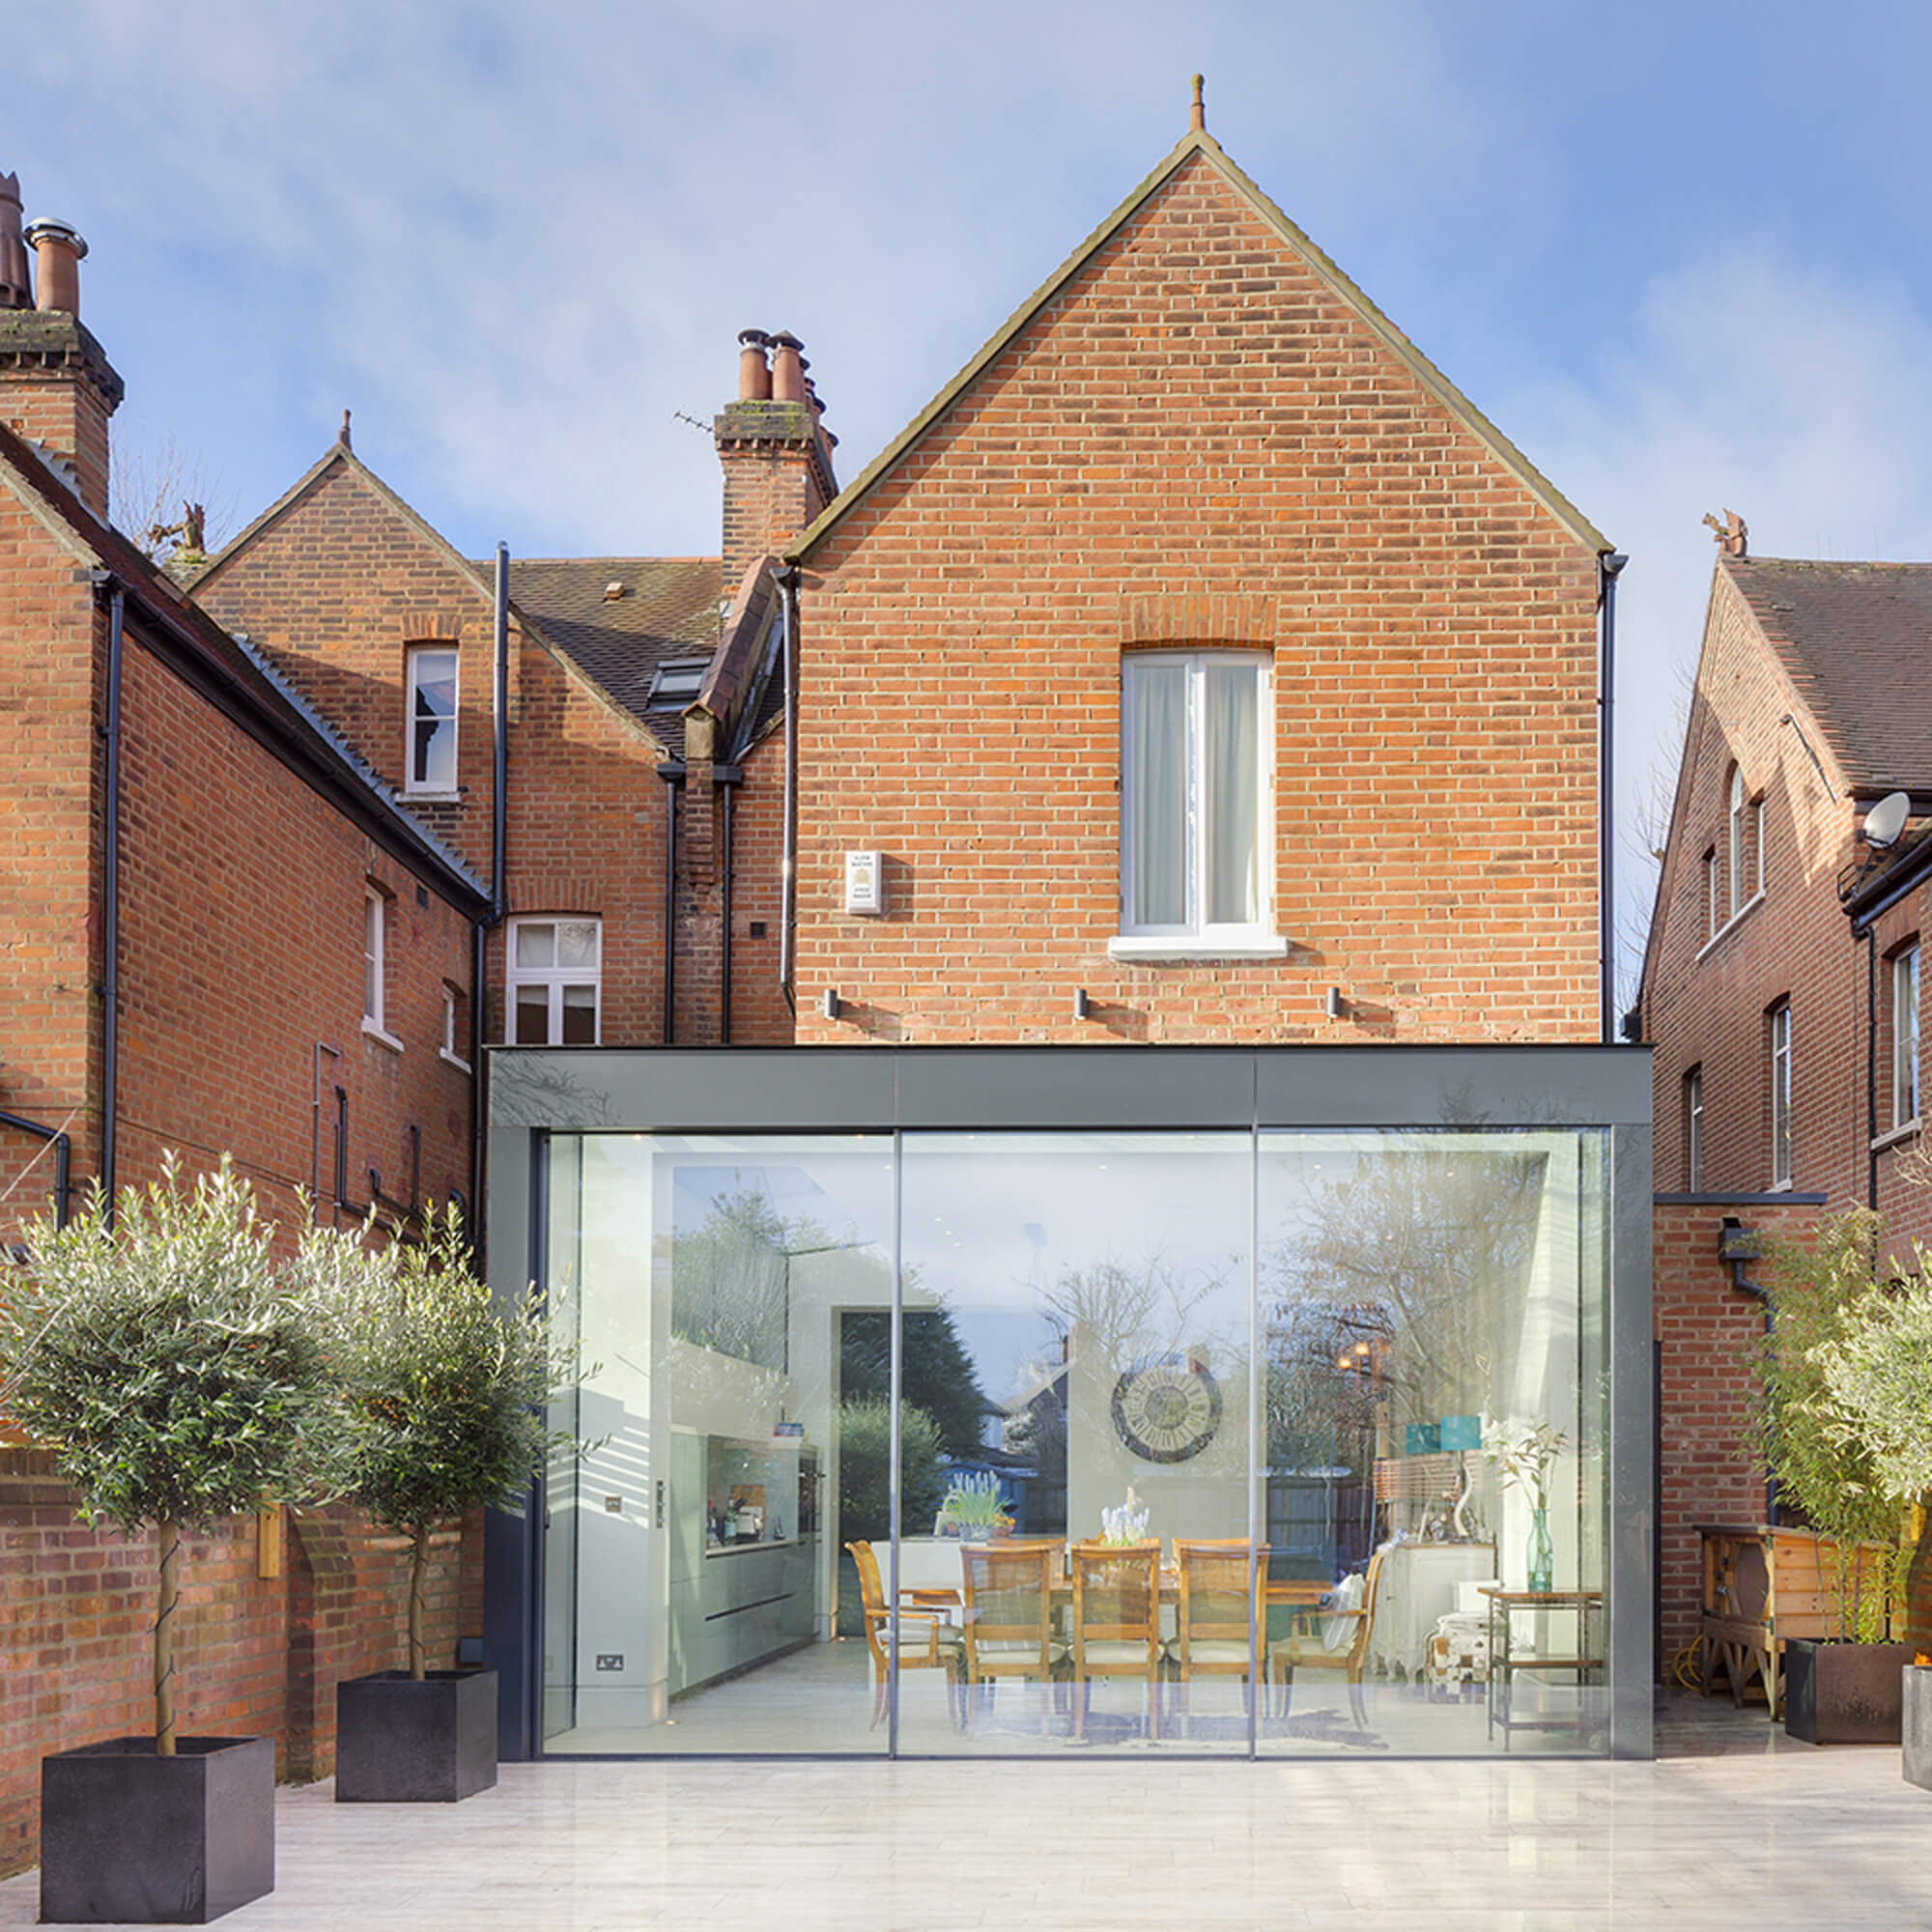 Marguerite Murdoch Architects - Based in Teddington, Richmond Upon Thames - Latest Project - Rear Extension